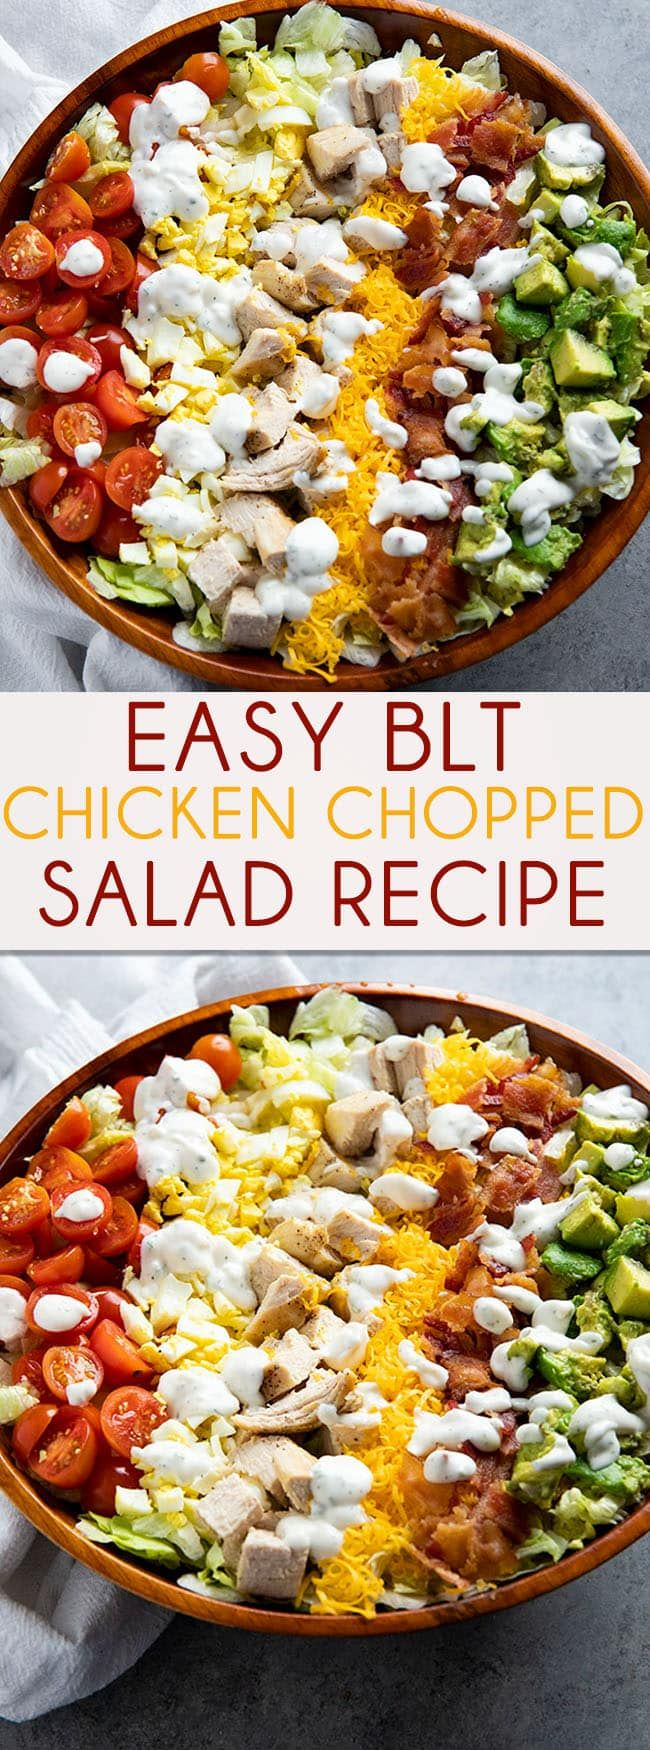 BLT Chicken Chopped Salad images